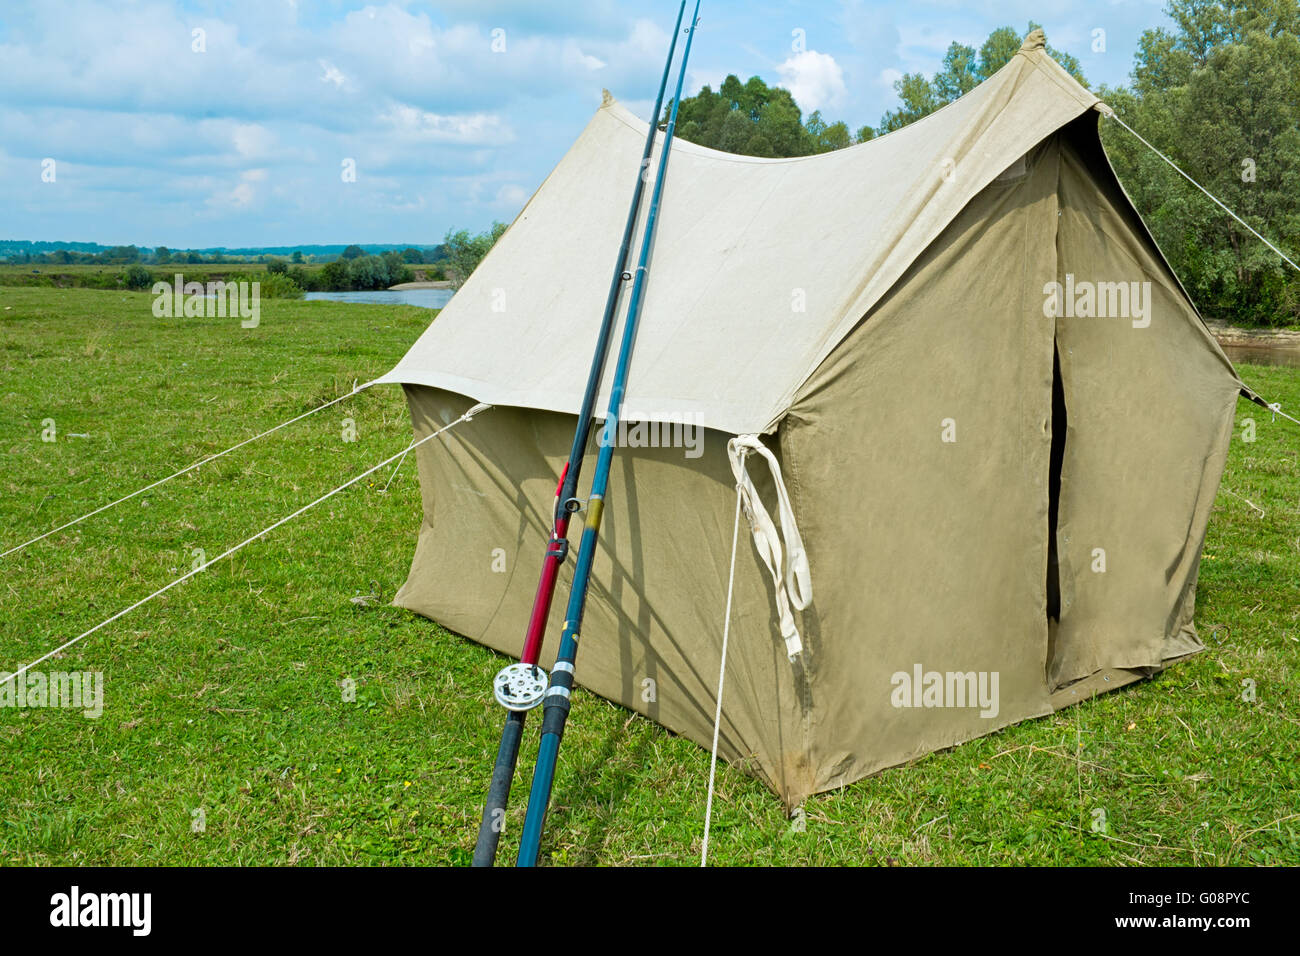 The tent from a canvas for fishing and tourism. Le - Stock Image